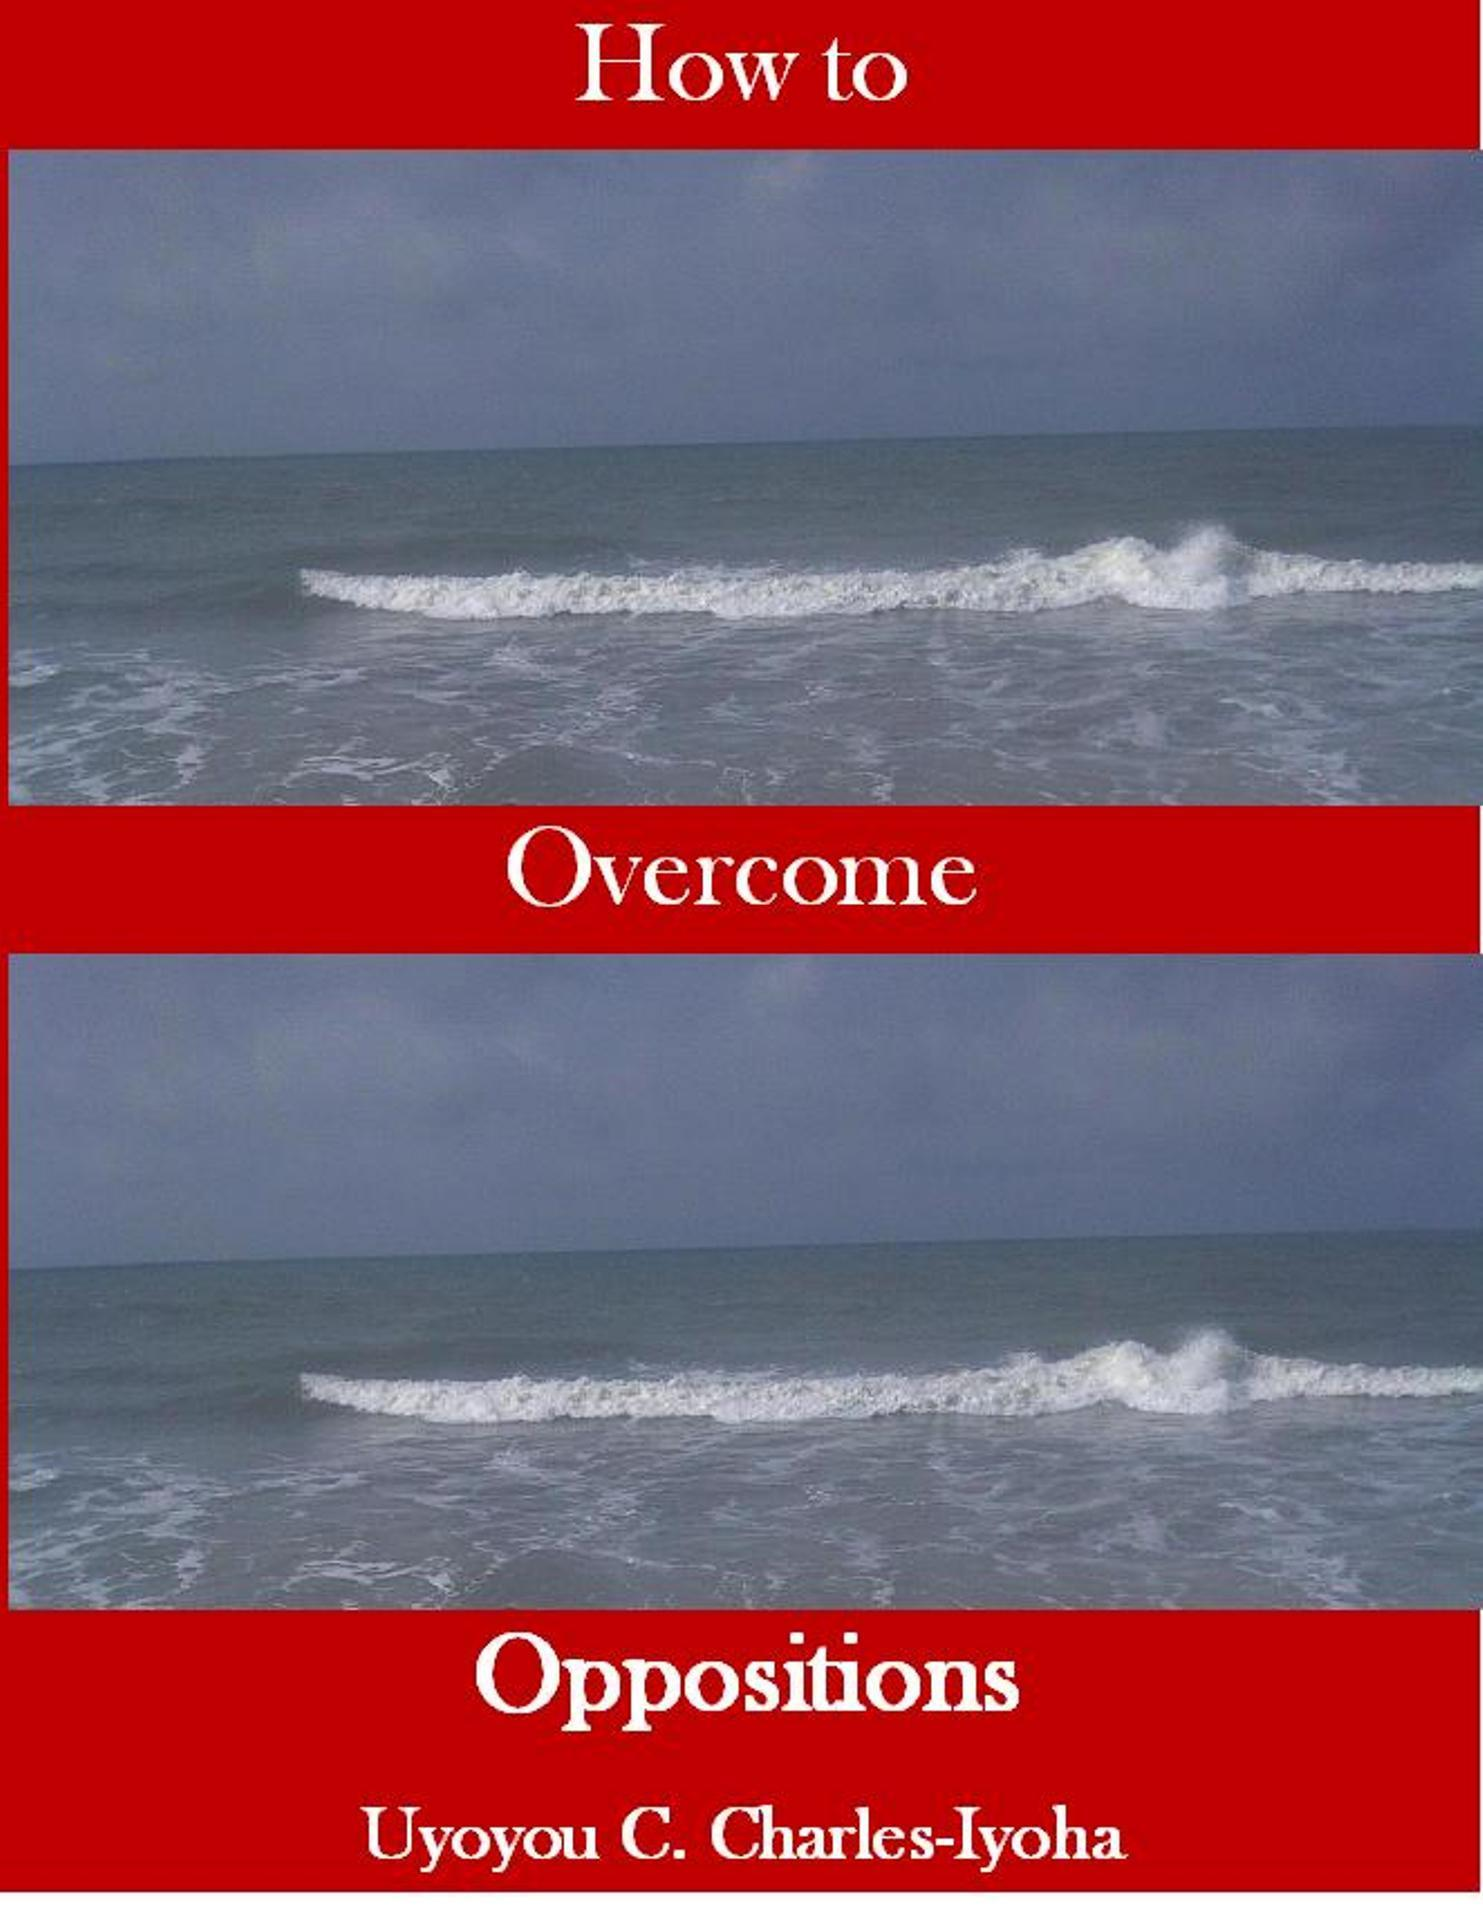 How To Overcome Oppositions  by  Uyoyou .C Charles-Iyoha